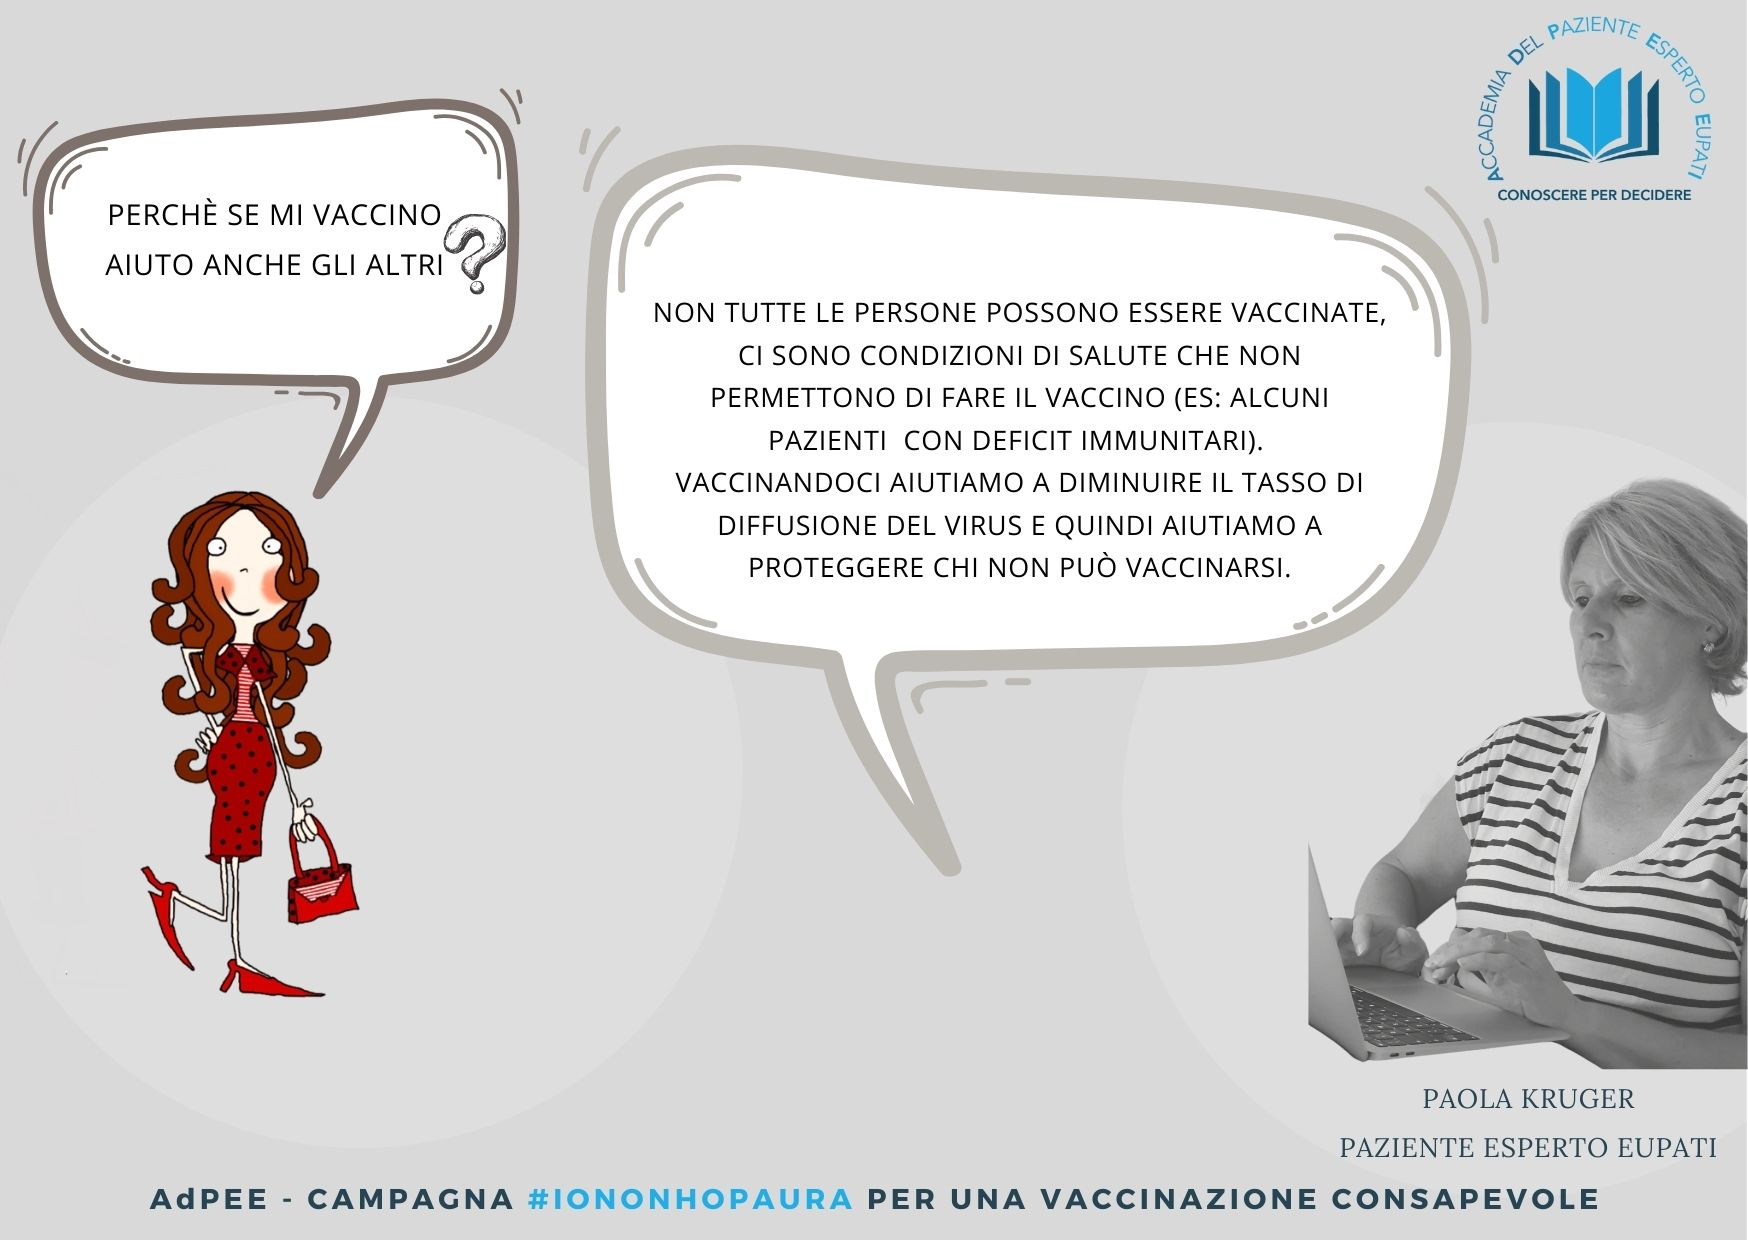 Vaccini Paola Kruger